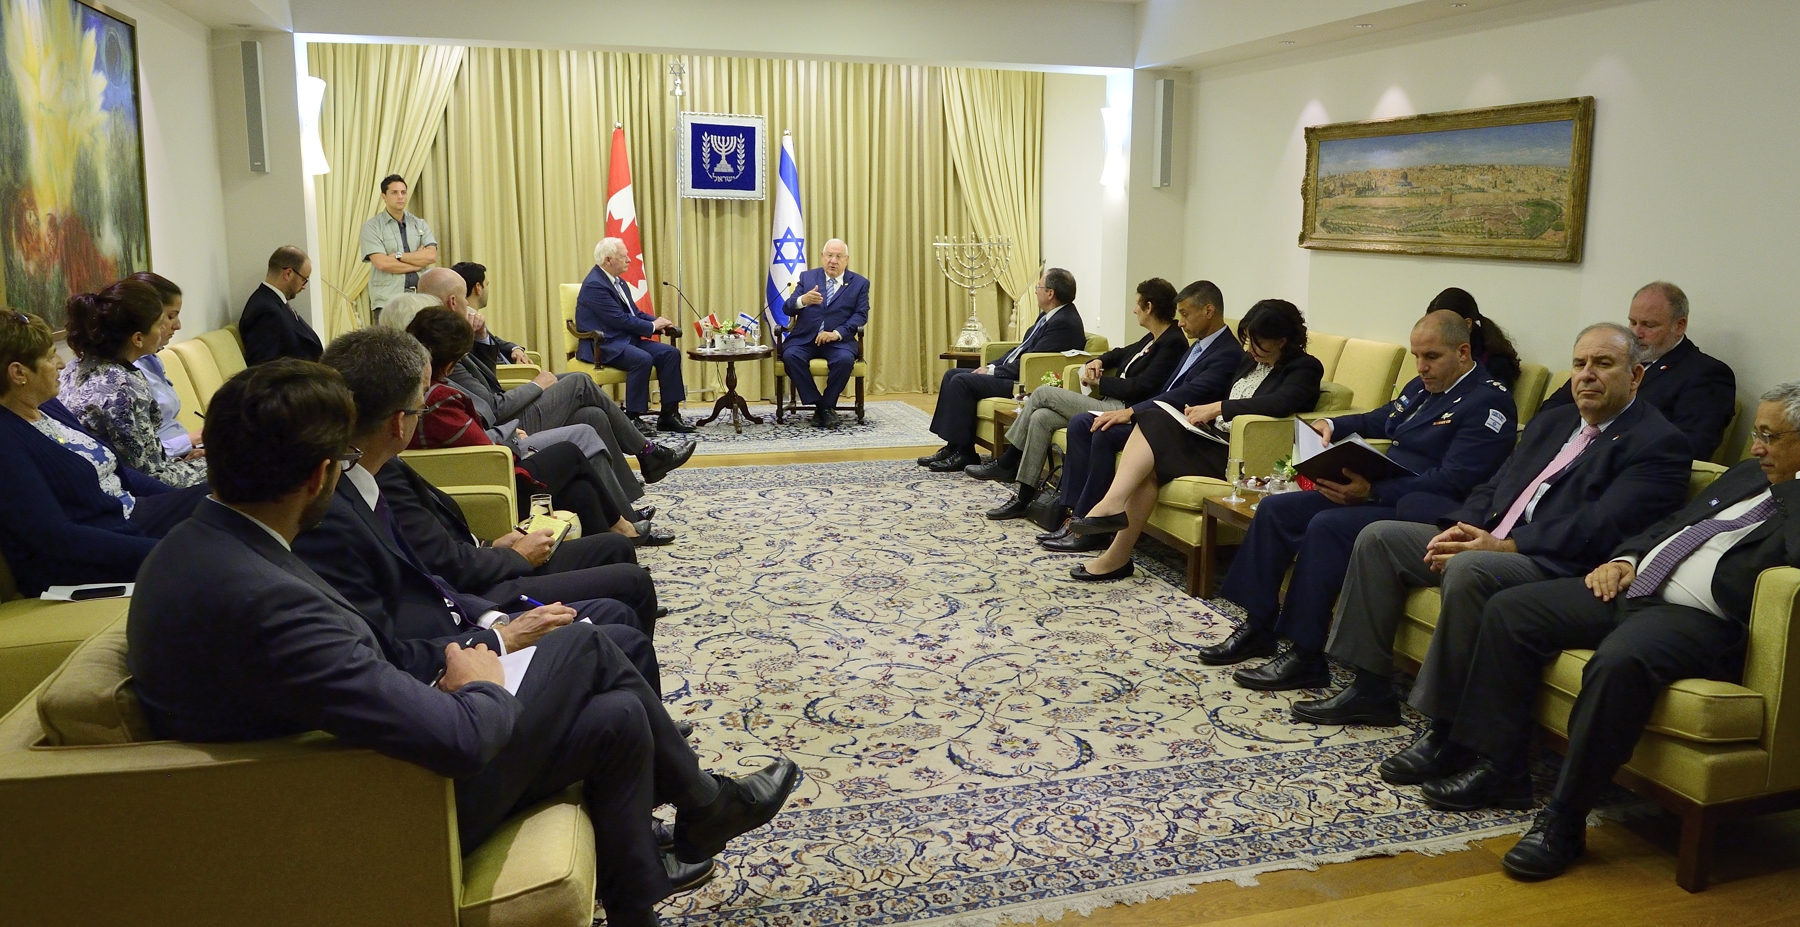 The statements were followed by a meeting between the Governor General, members of the Canadian delegation, President Rivlin and representatives of the Israeli government to discuss topics of interest shared by Canada and Israel.